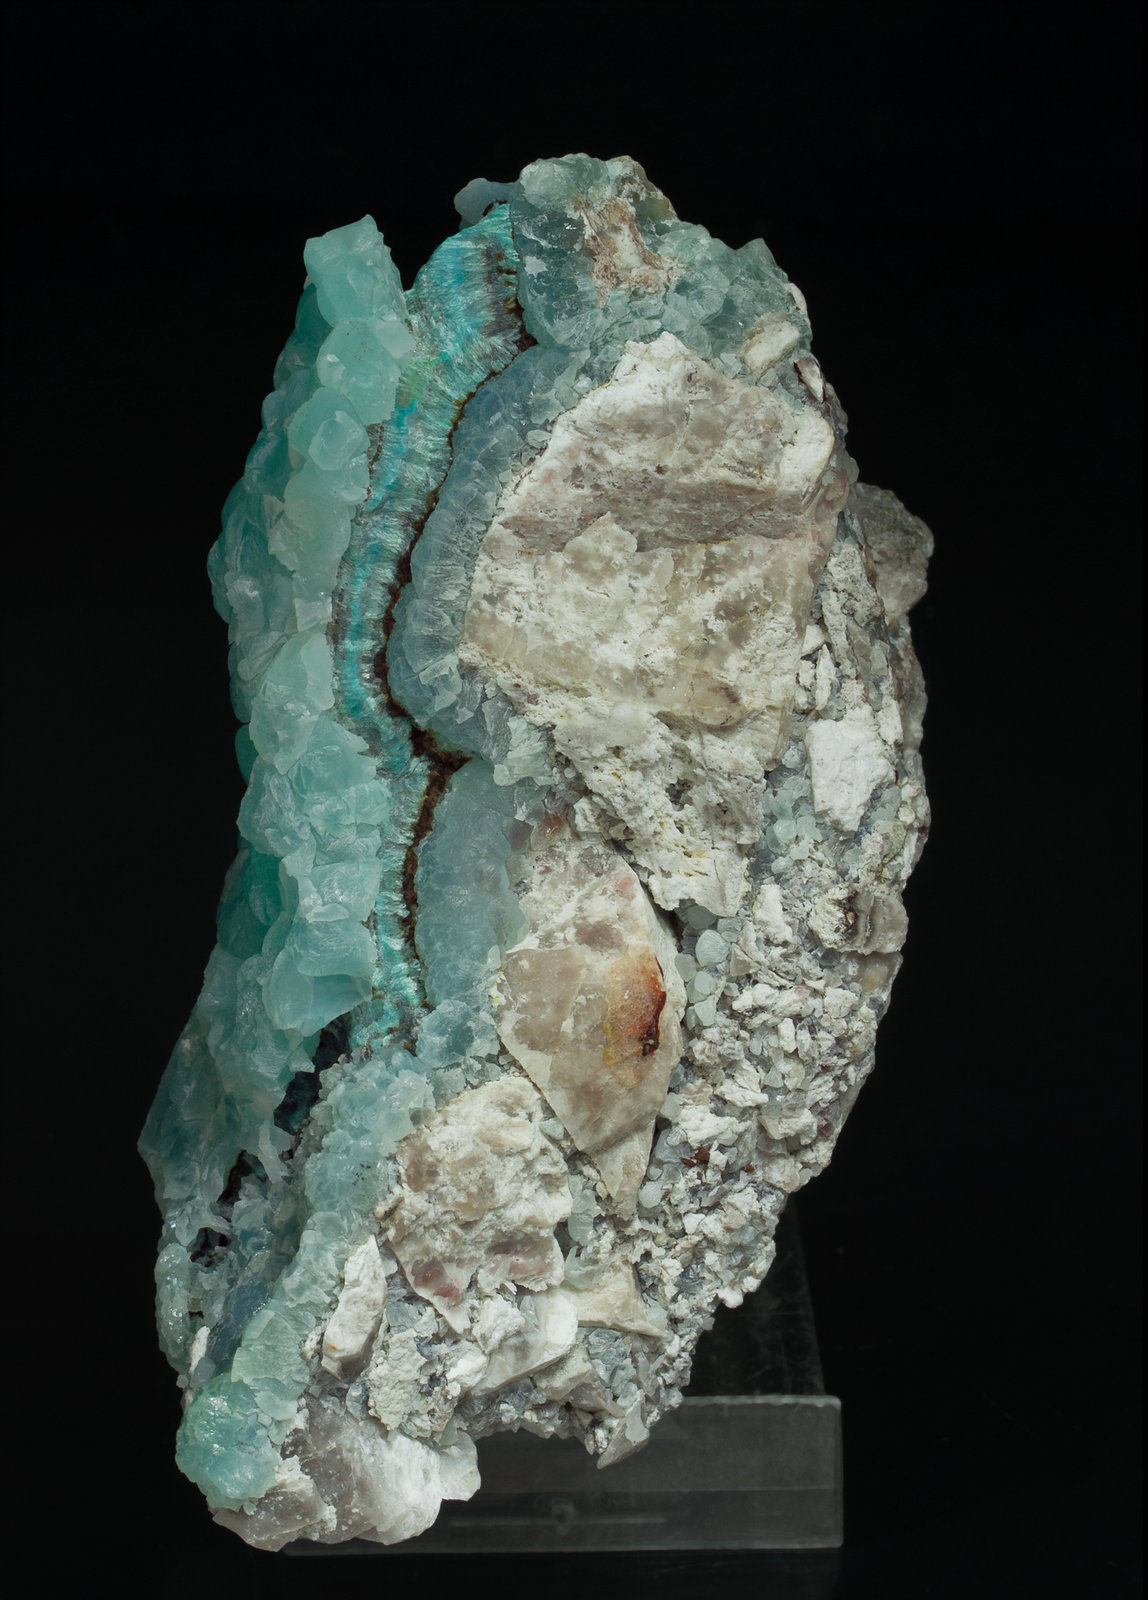 specimens/s_imagesY4/Smithsonite-VF71Y4s.jpg